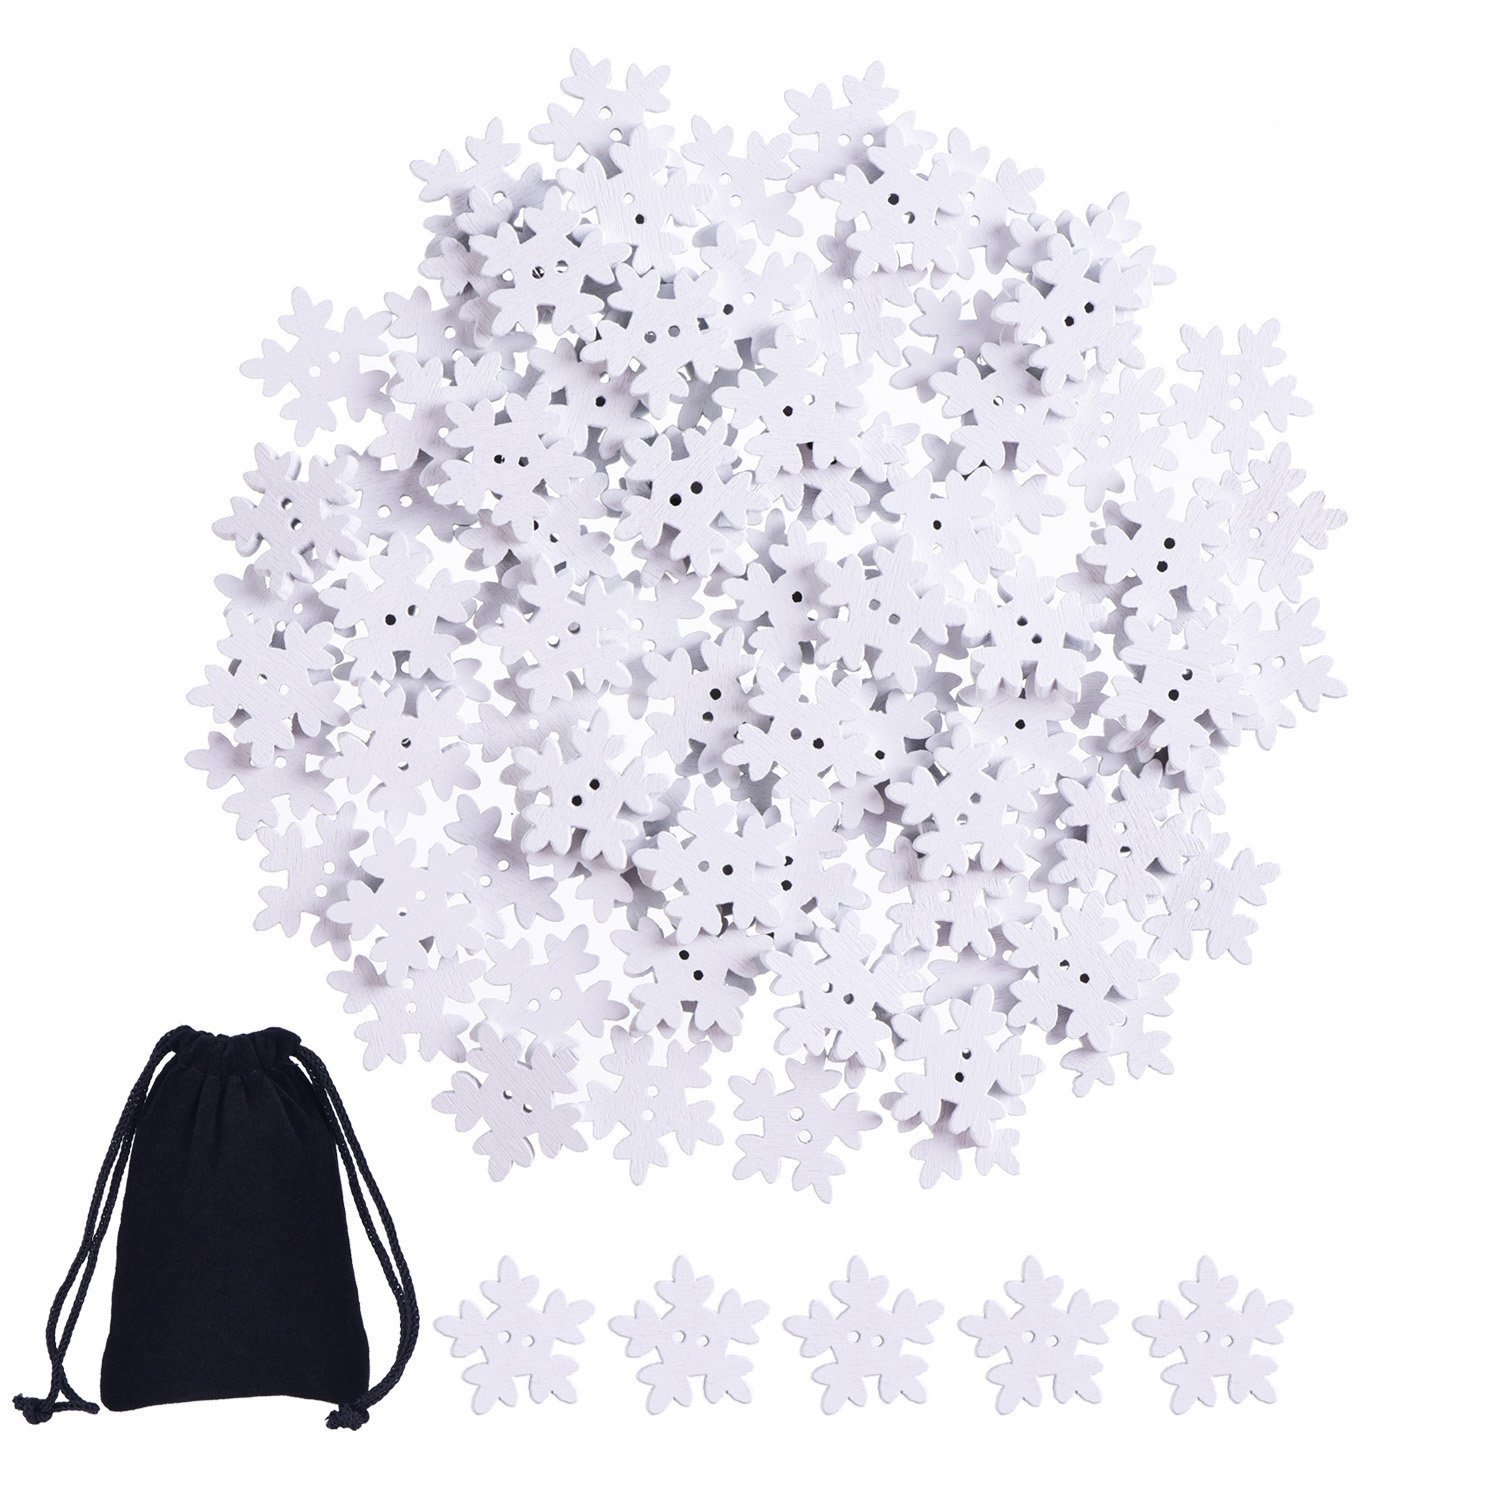 150 Pieces Snowflakes Buttons Christmas White Wooden Buttons with 2 Holes for Scrapbook Craft and Sewing Sumind